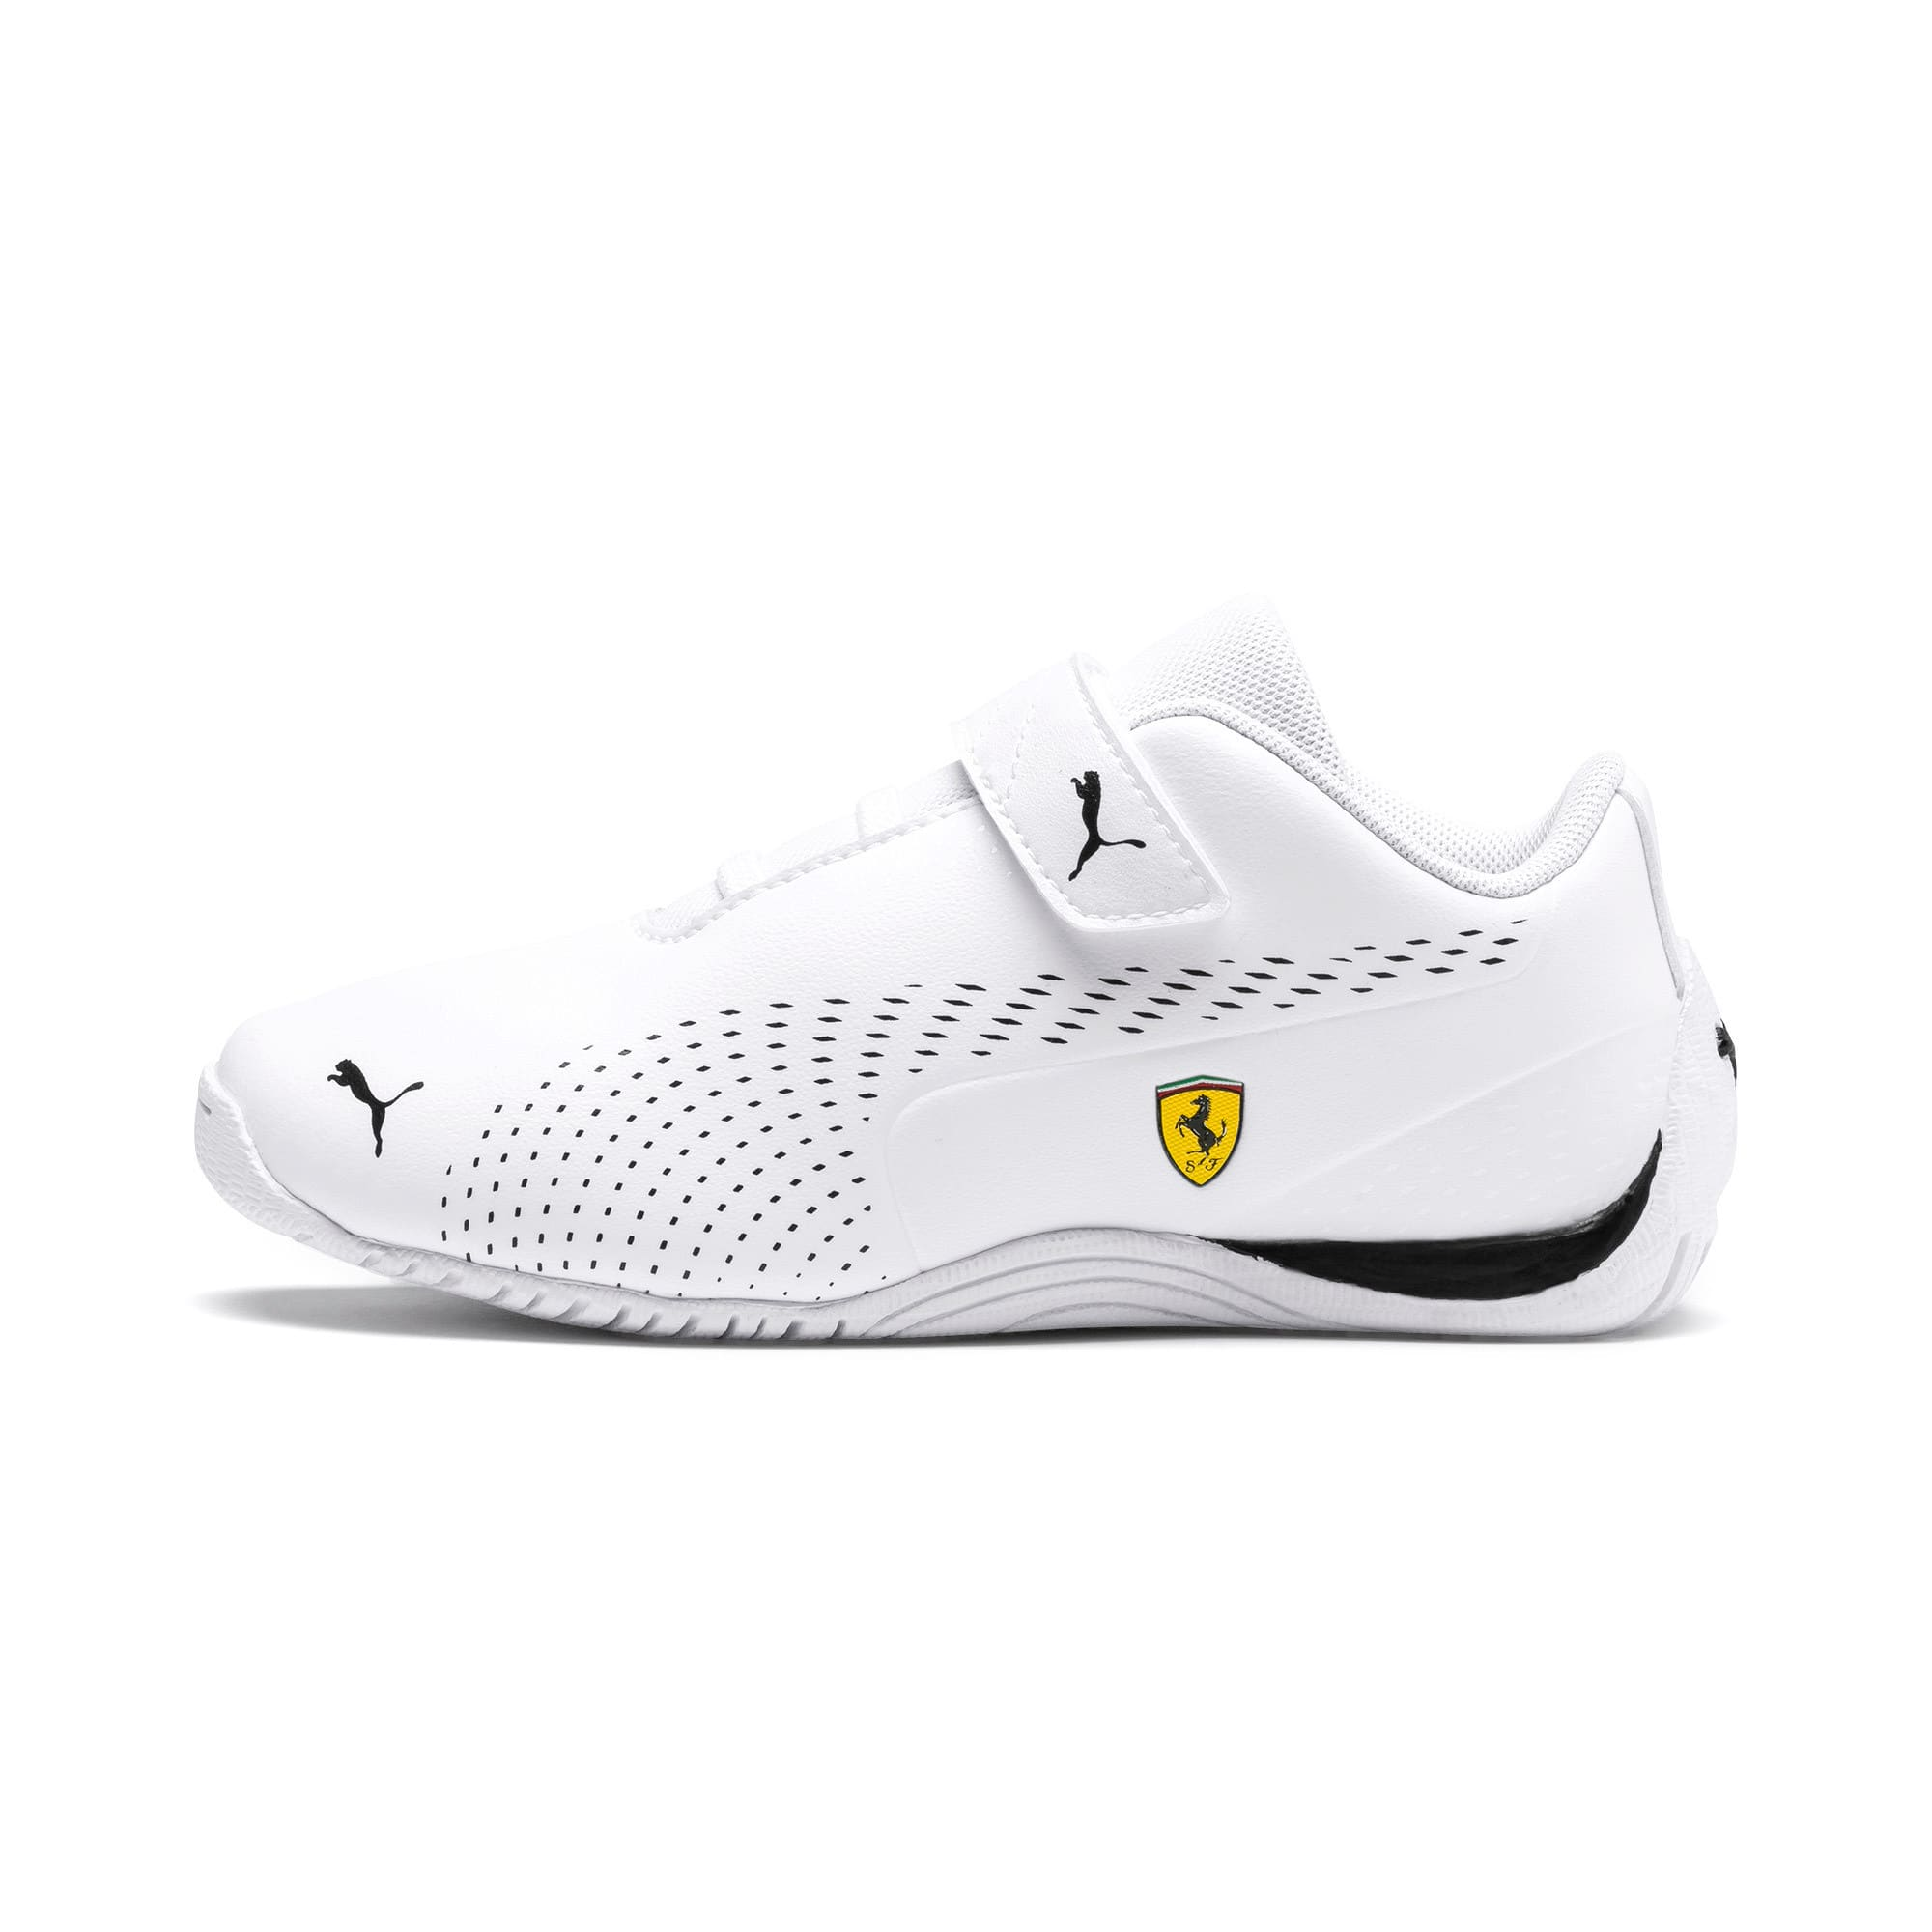 Thumbnail 1 of Ferrari Drift Cat 5 Ultra II V Kids Sneaker, Puma White-Puma Black, medium